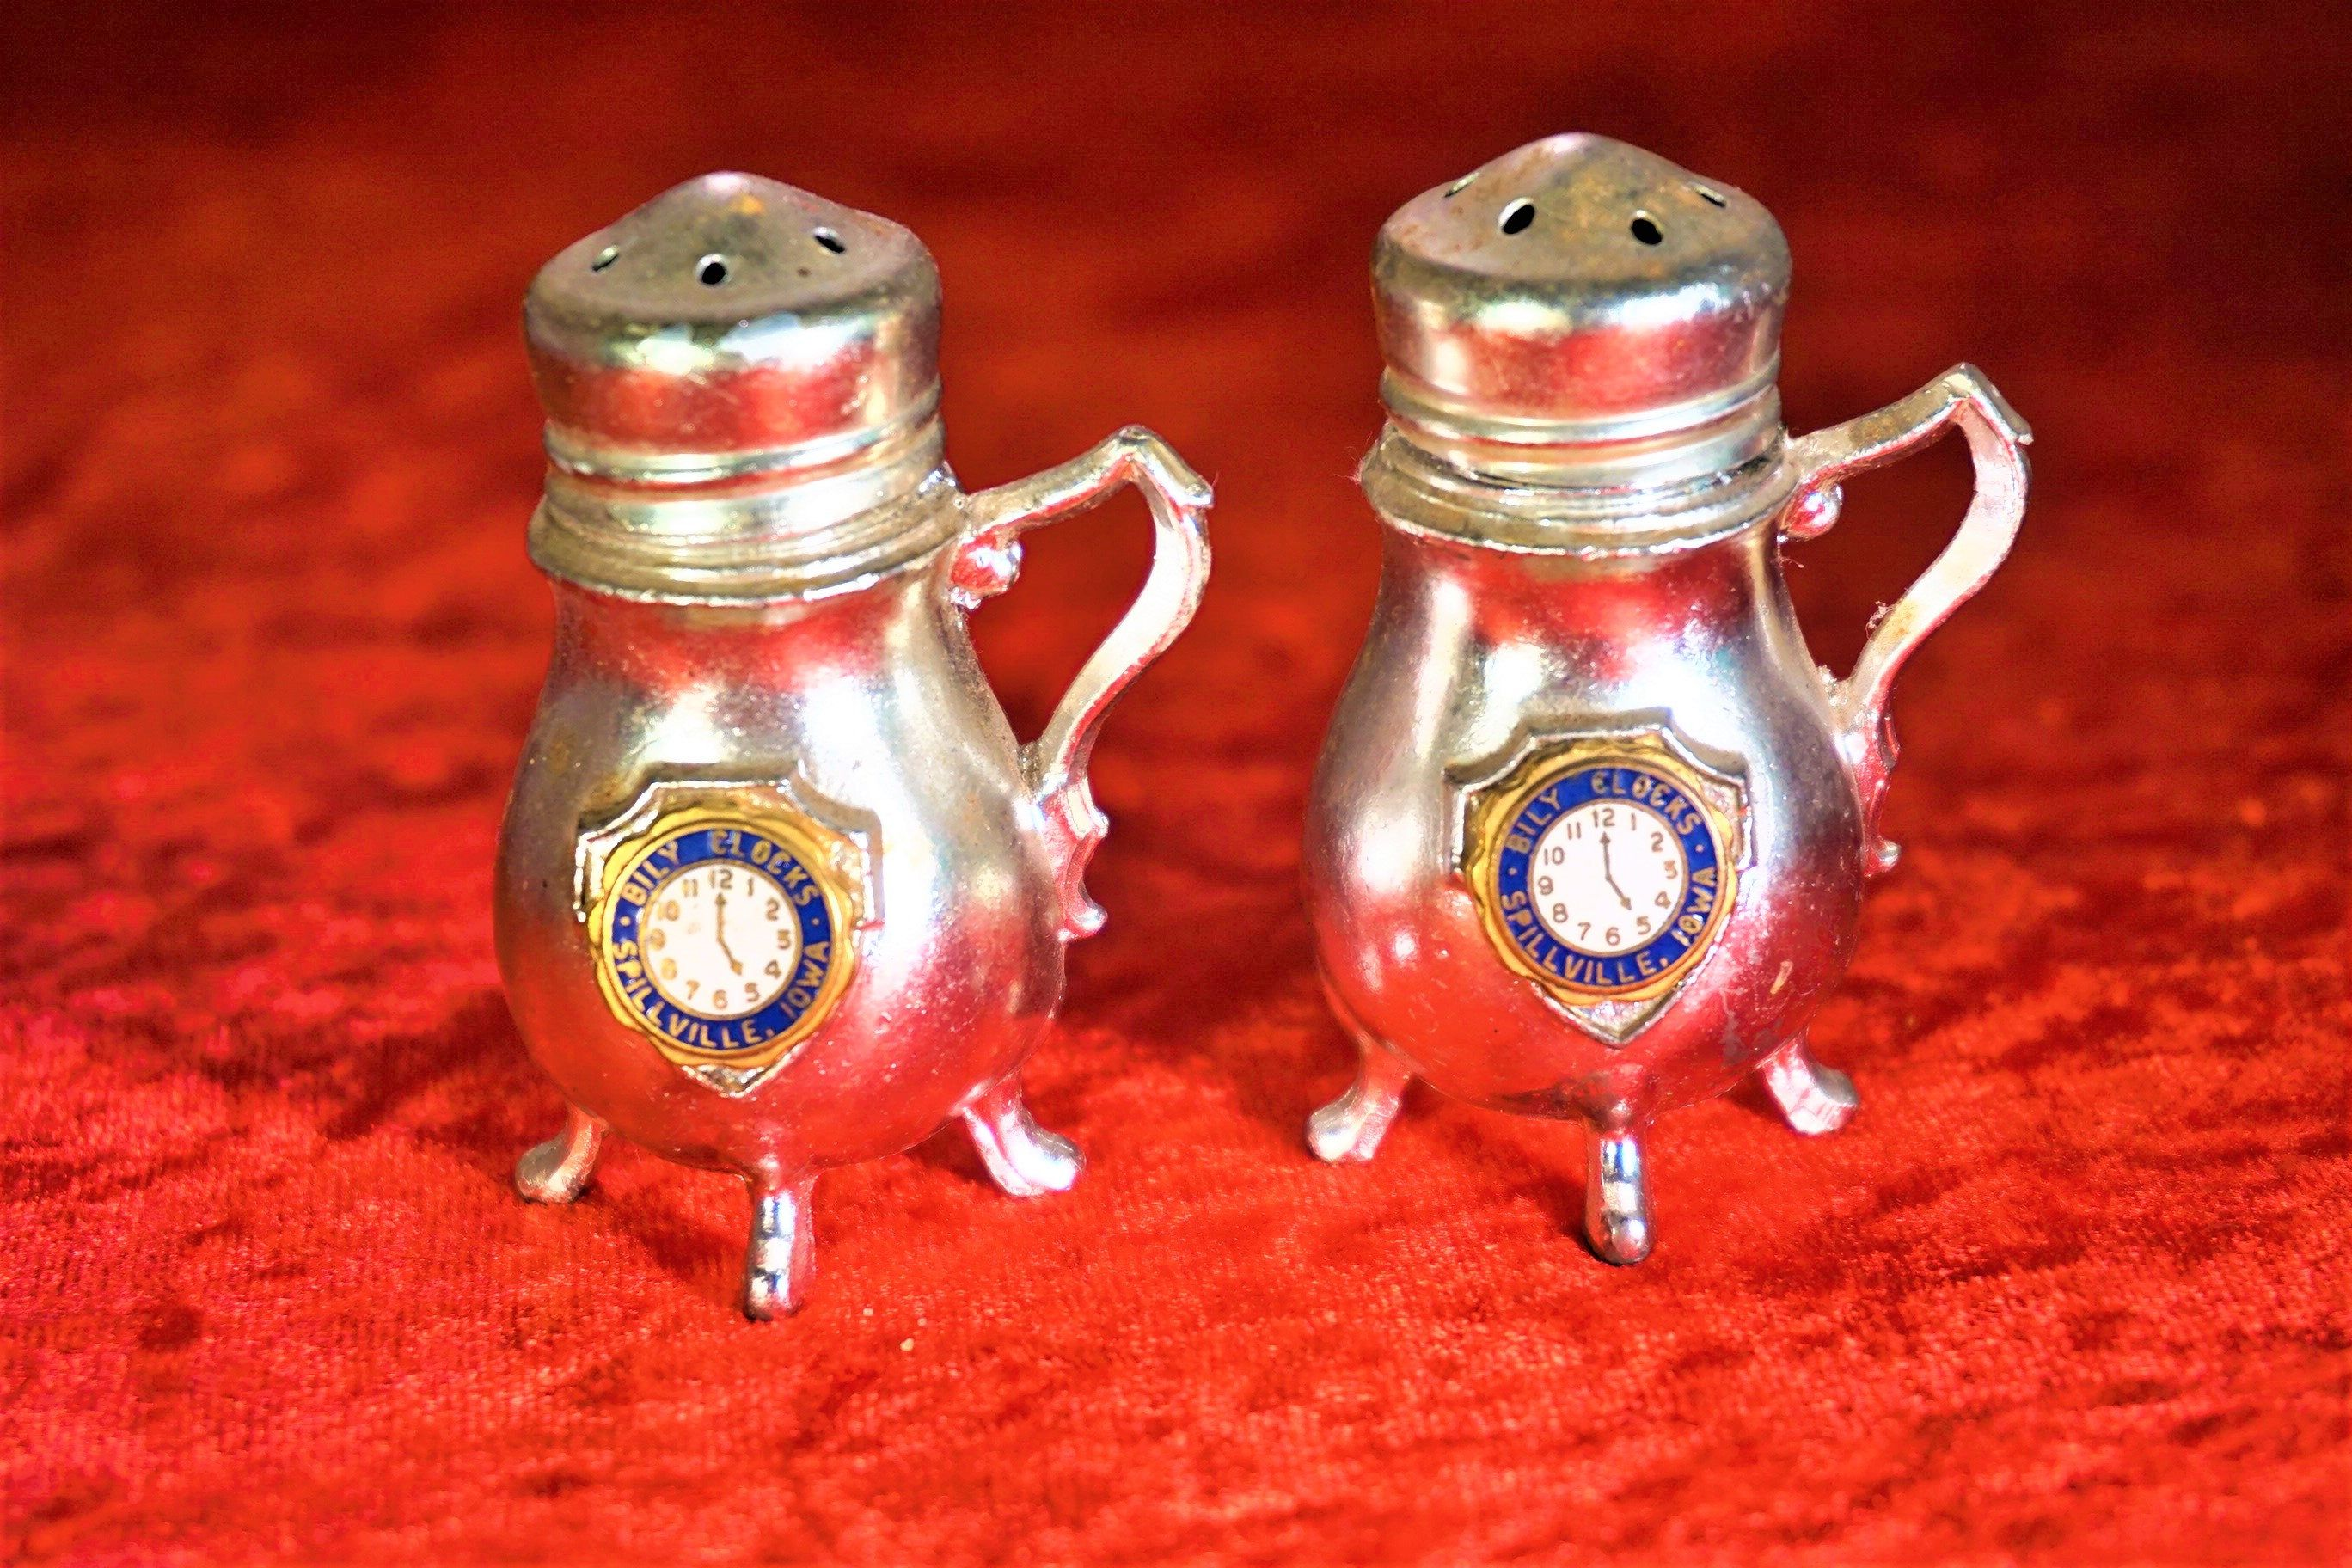 Vintage Unique Salt And Pepper Shakers Collectible Gift For Her Home